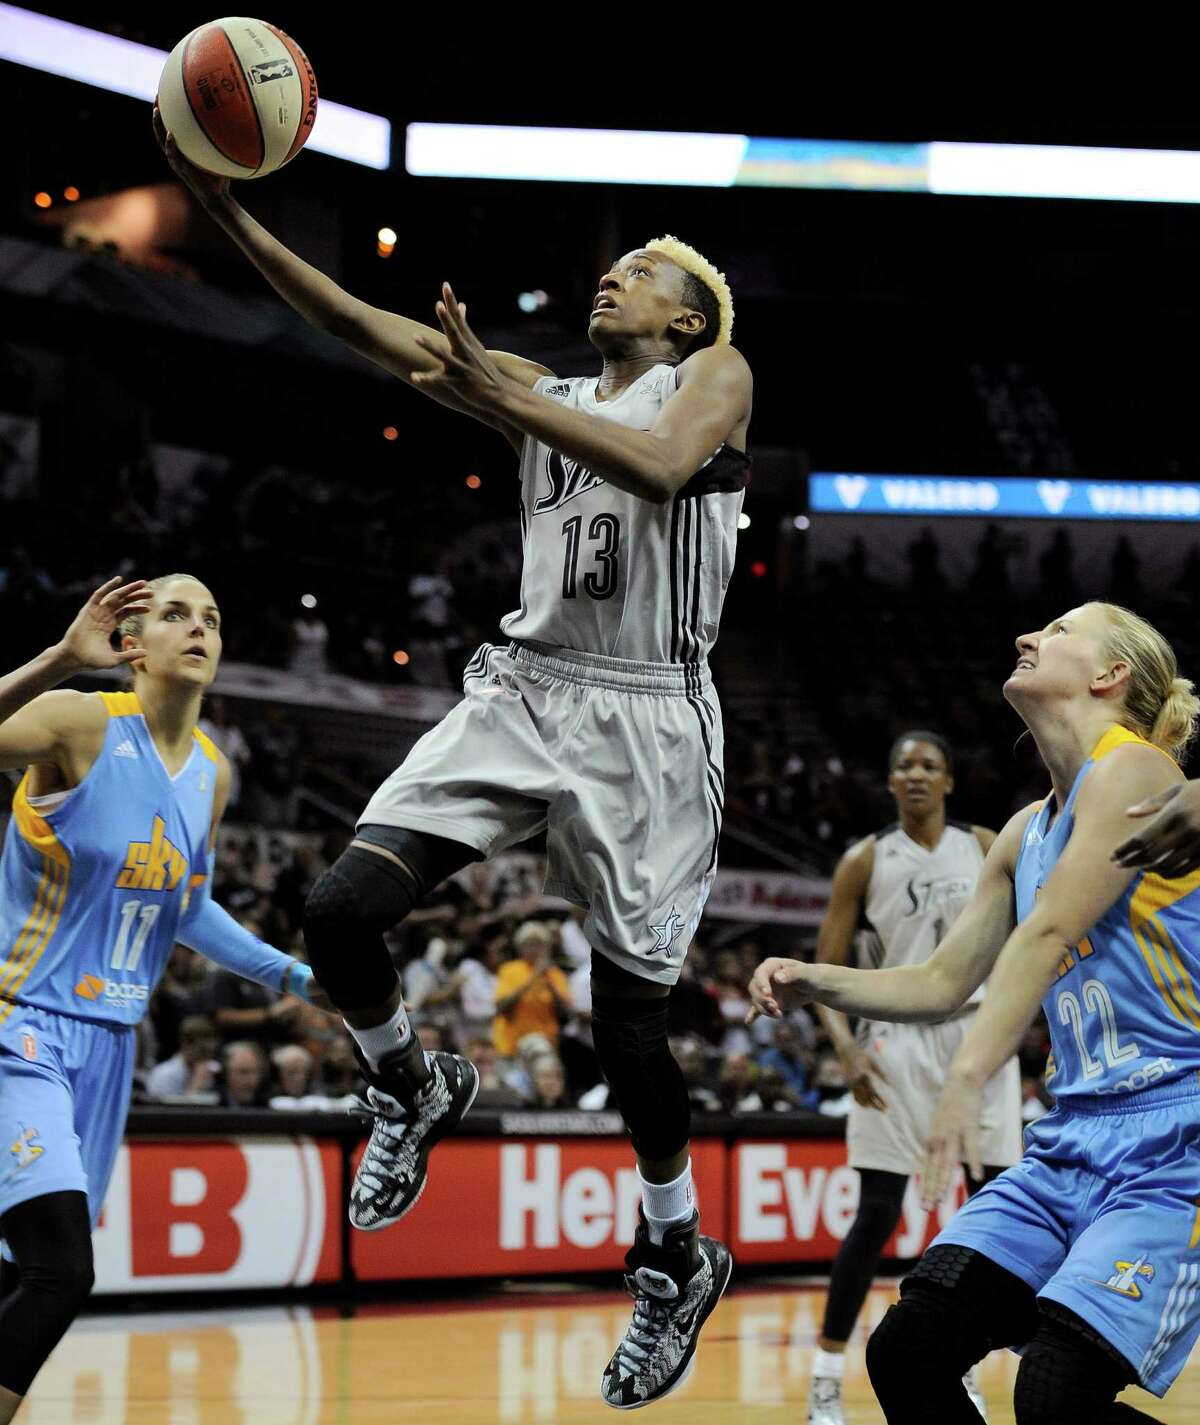 San Antonio Silver Stars' Danielle Robinson, center, shoots between Chicago Sky's Elena Delle Donne, left, and Courtney Vandersloot during the first half of a WNBA basketball game, Friday, June 7, 2013, in San Antonio. (Darren Abate/For the Express-News)